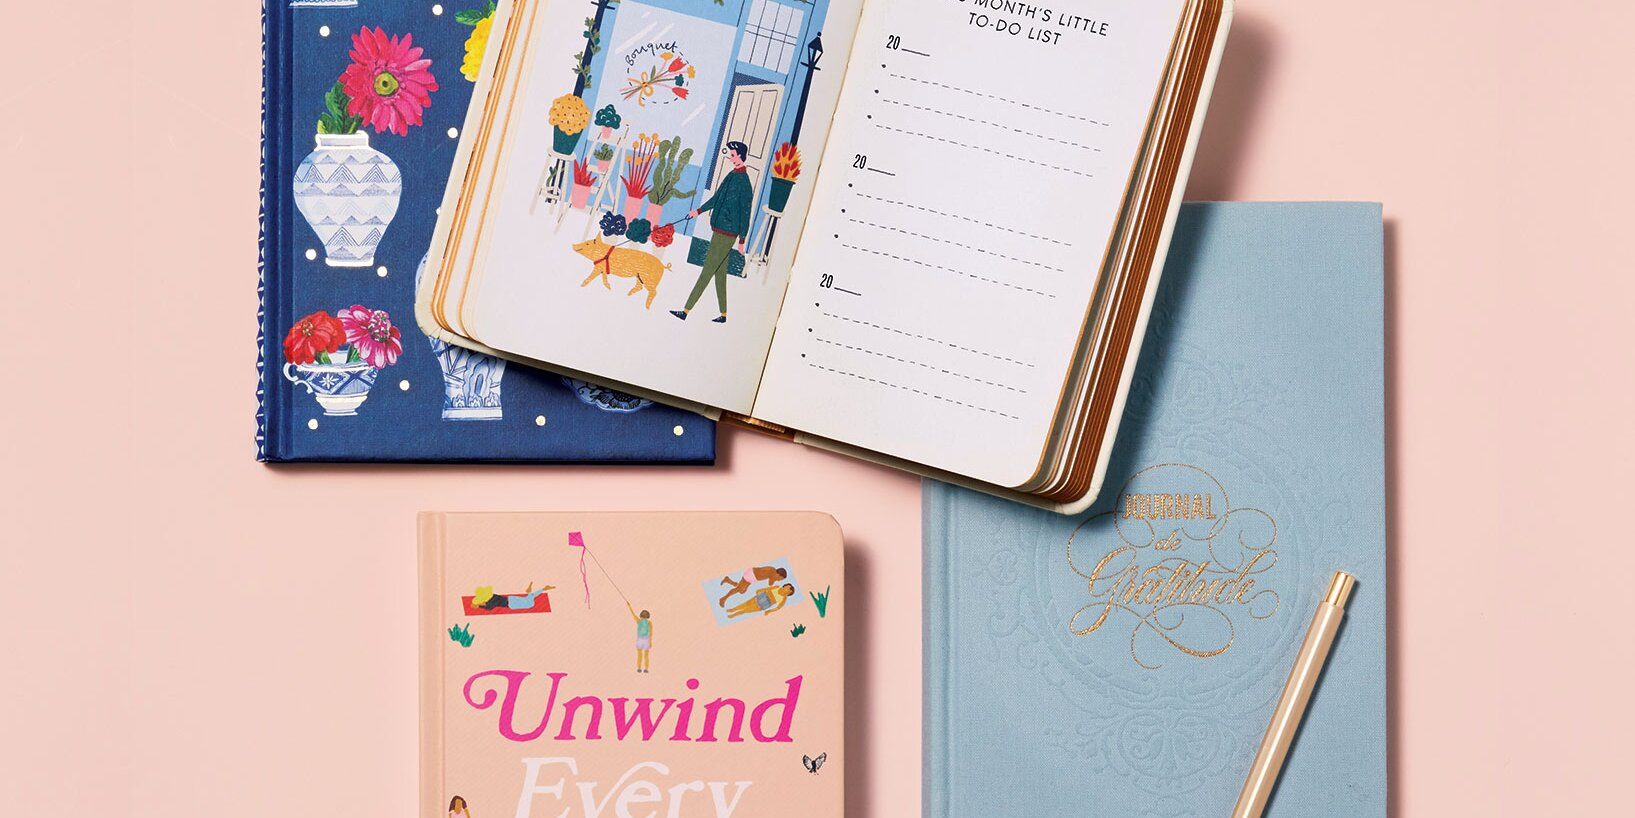 Journaling can be made fun too!